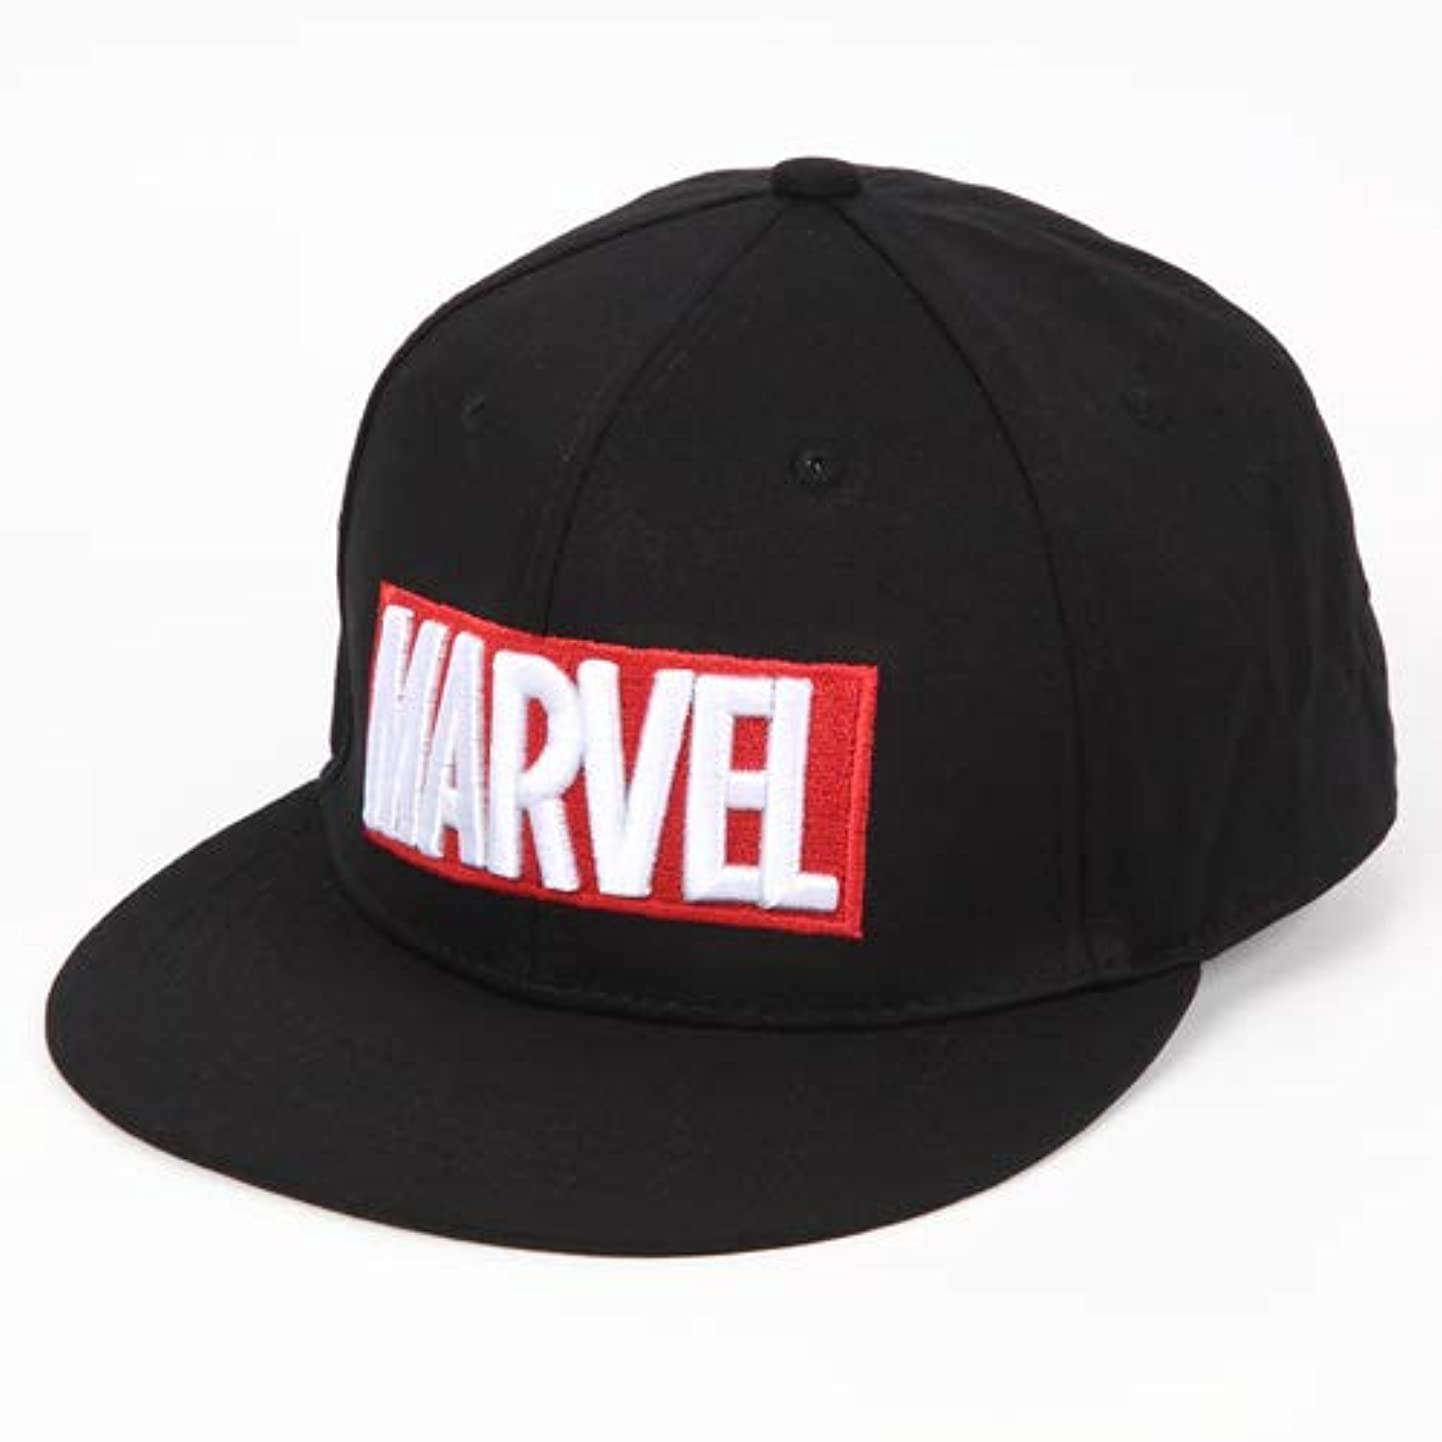 繰り返したパトロン浸食MARVEL マーベル キャップ 帽子 メンズ レディース CAP 男女兼用 マーベルロゴ